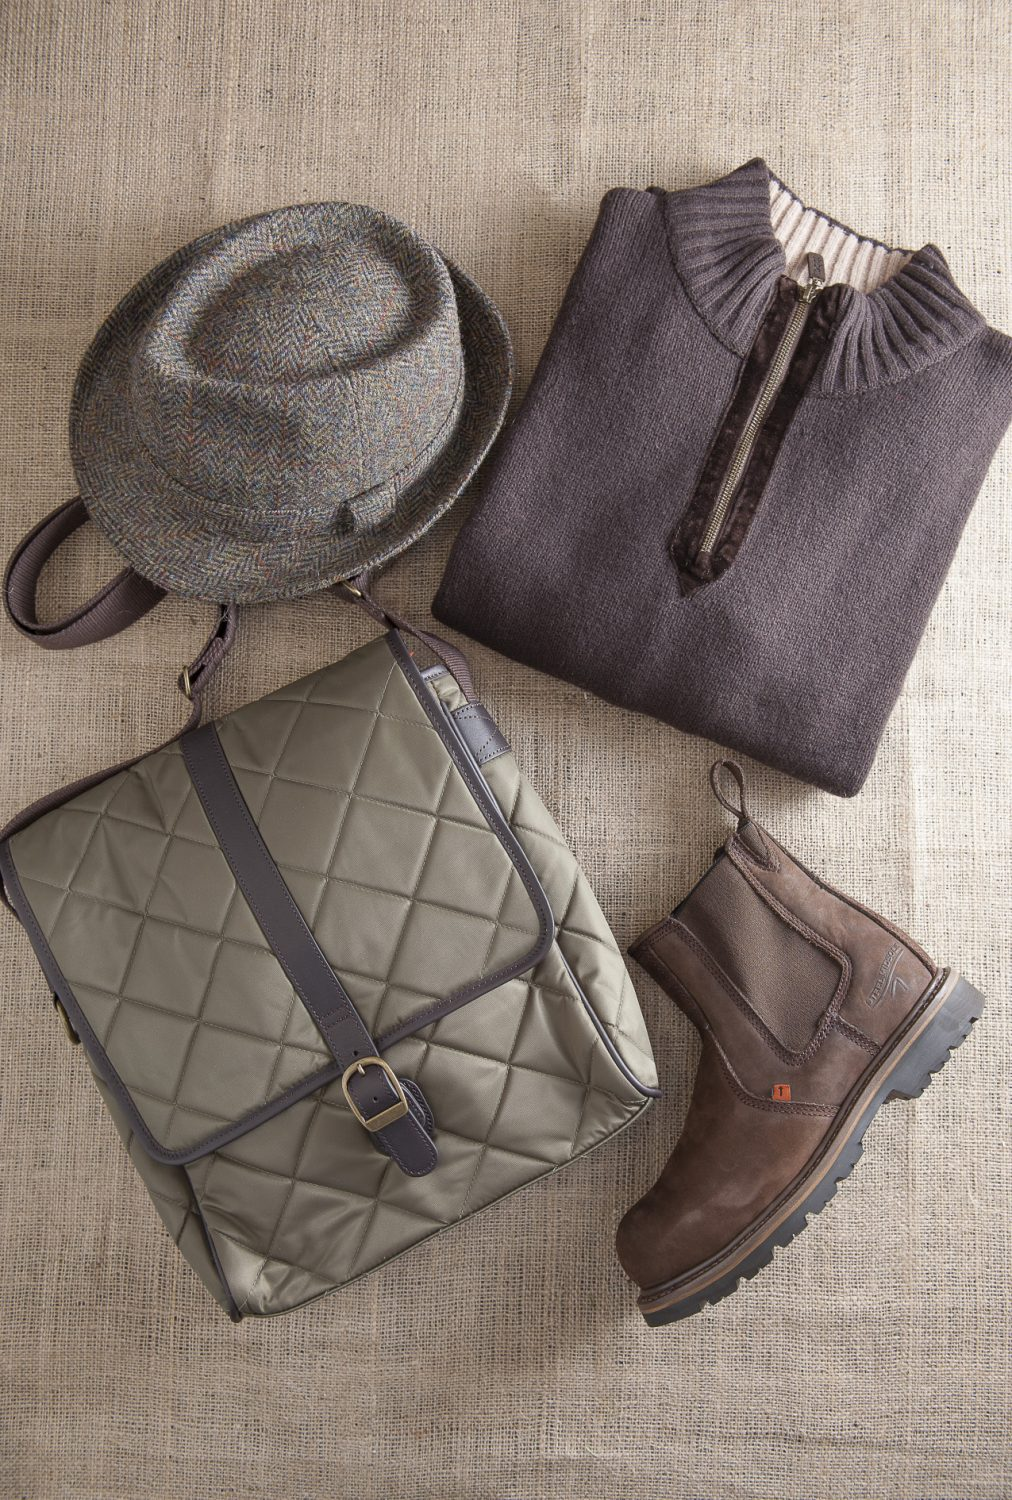 Harris Tweed trilby, £59, The Golden Fleece, Rye 01797 224271 www.thegoldenfleece.co.uk; Barbour quilted bag, £100, County Clothes, Canterbury 01227 765294 / Tenterden 01580 765159 / Reigate 01737 249224 www.countyclothesmenswear.co.uk Toggi jumper, £52.50, Buckler boots, £68.75, Charity Farm Countrystore, Cranbrook 01580 713189 www.charityfarmcountrystore.co.uk